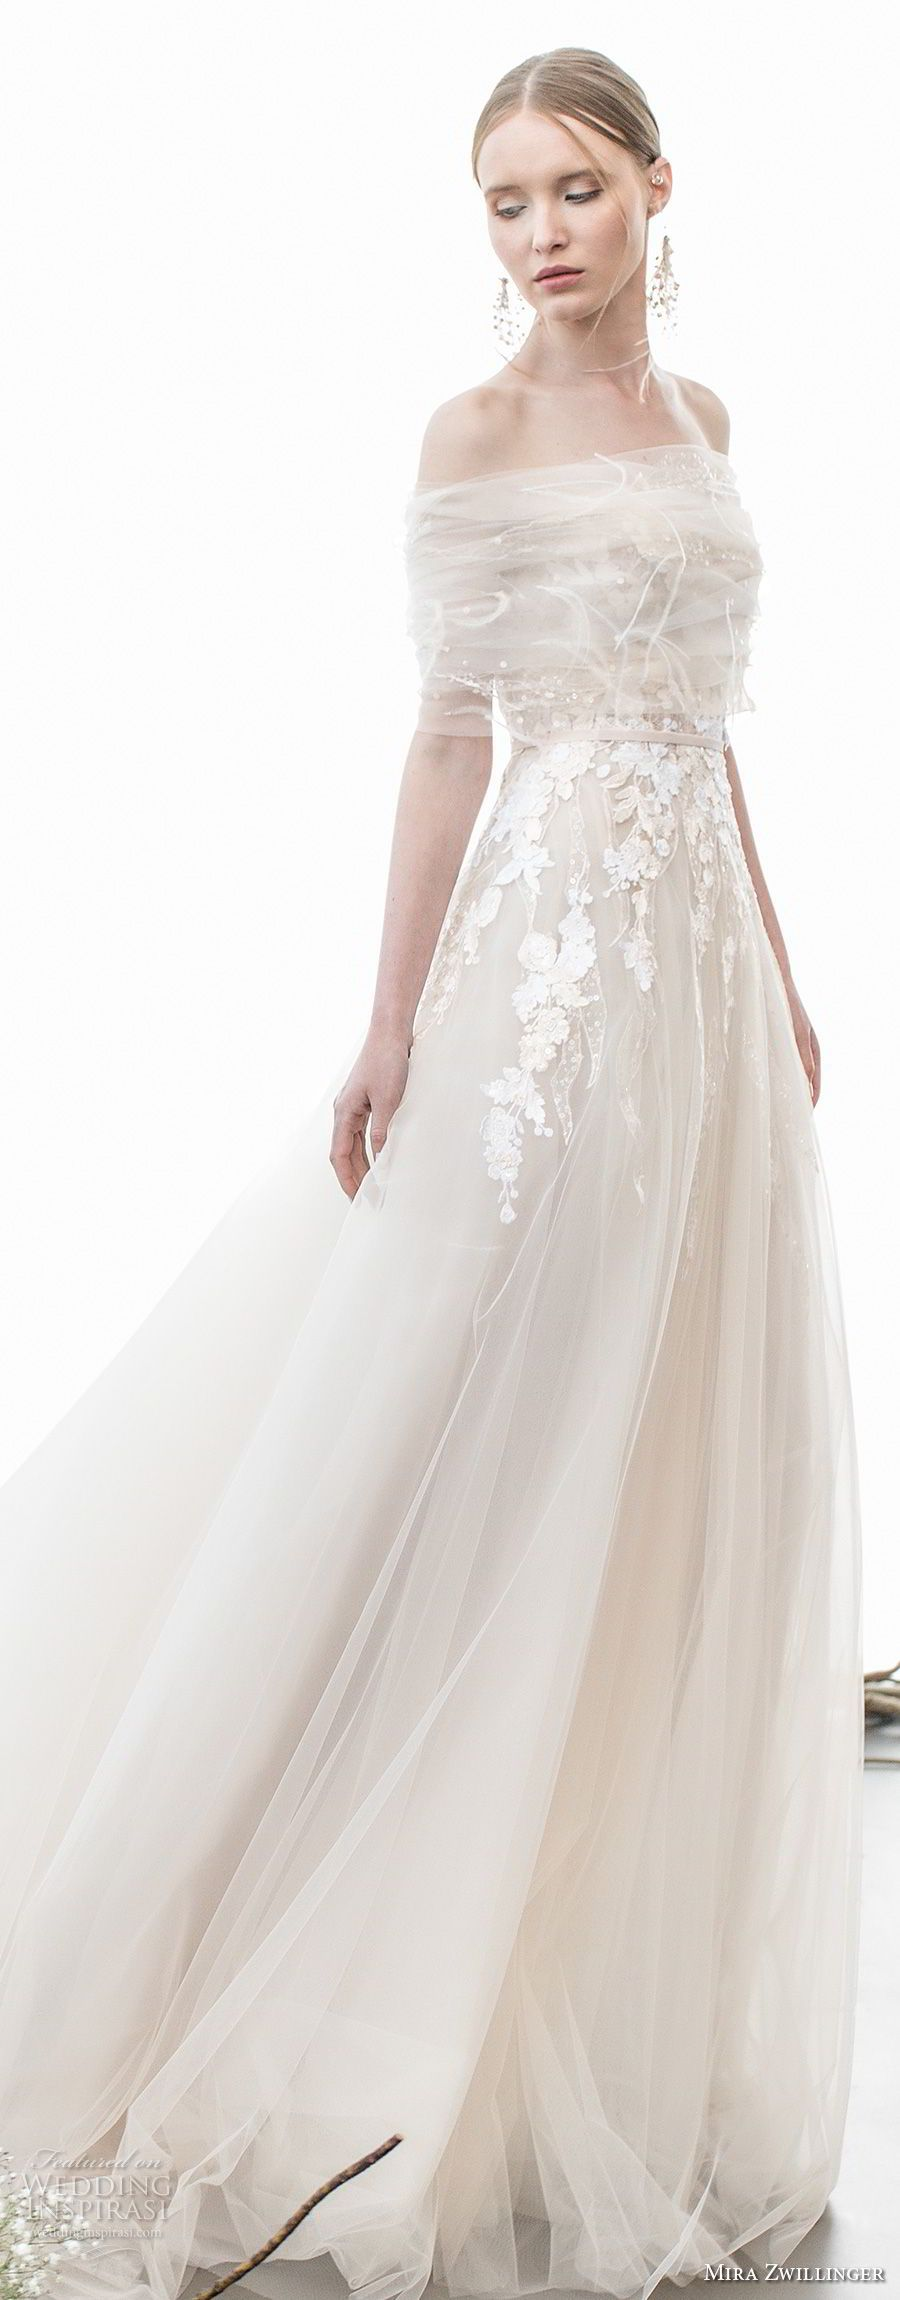 Mira zwillinger wedding dresses u ucover the rainbowud bridal